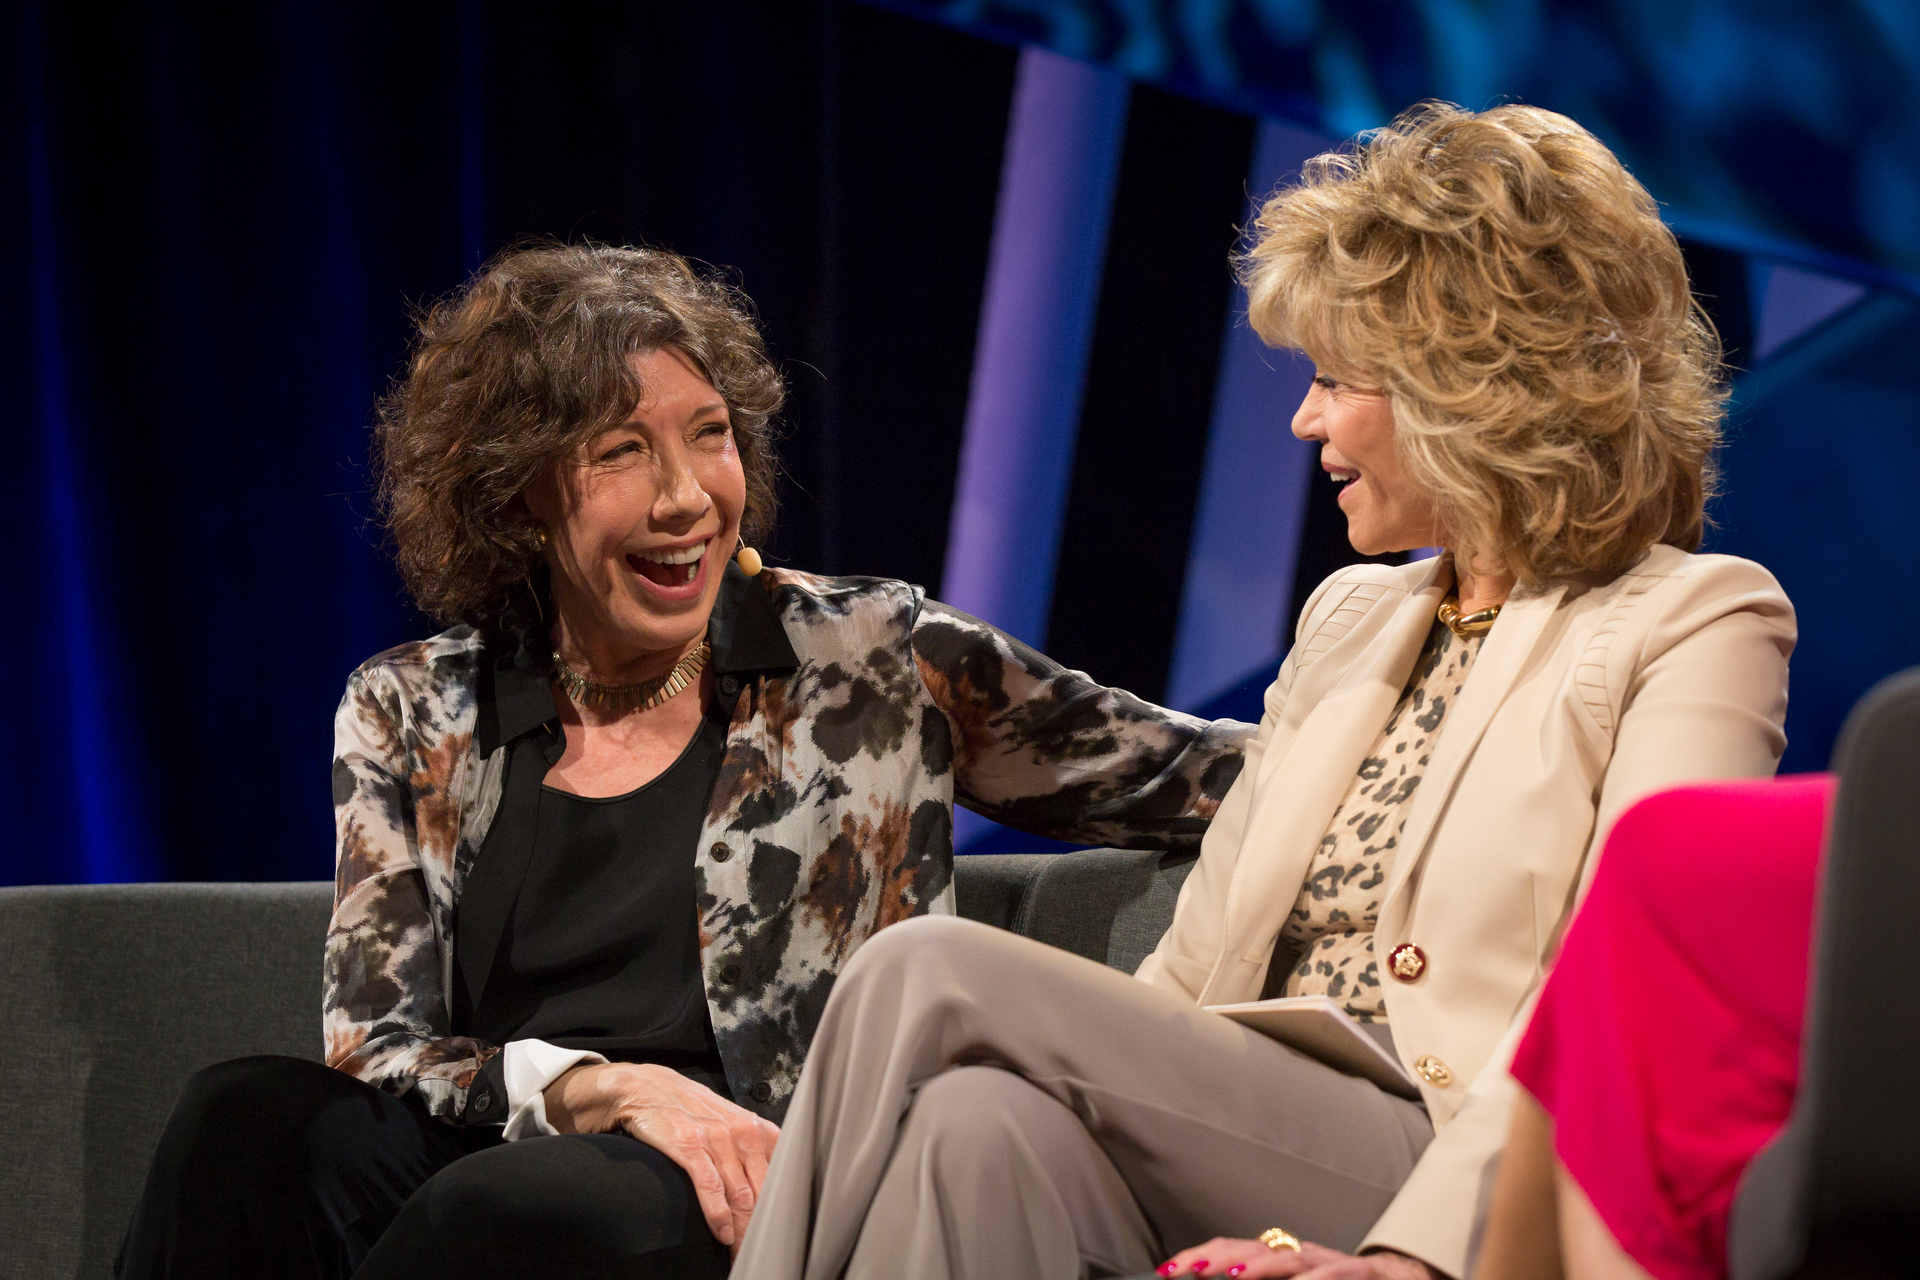 Lili Tomlin and Jane Fonda speak at TEDWomen2015 - Momentum, Session 6 May 29, 2015, Monterey Conference Center, Monterey, California, USA. Photo: Marla Aufmuth/TED